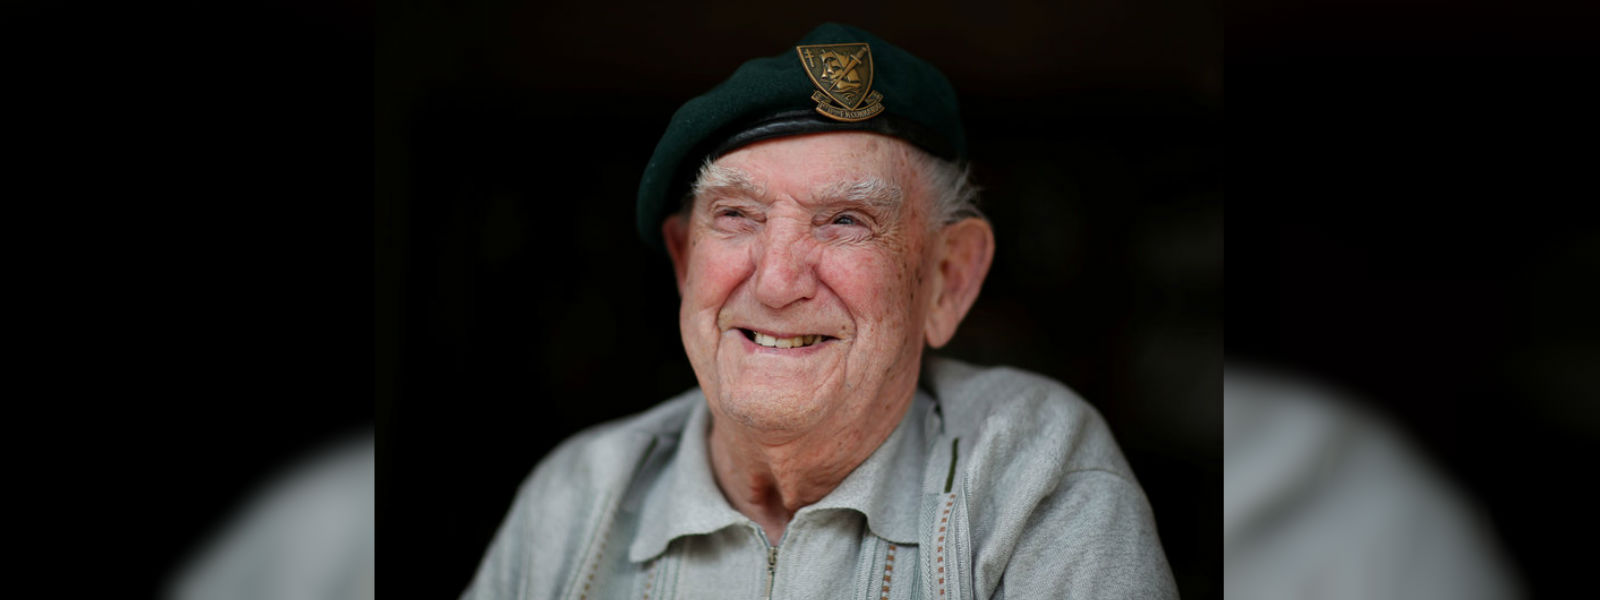 As D-Day landings fade from memory, a veteran grapples with violence of war